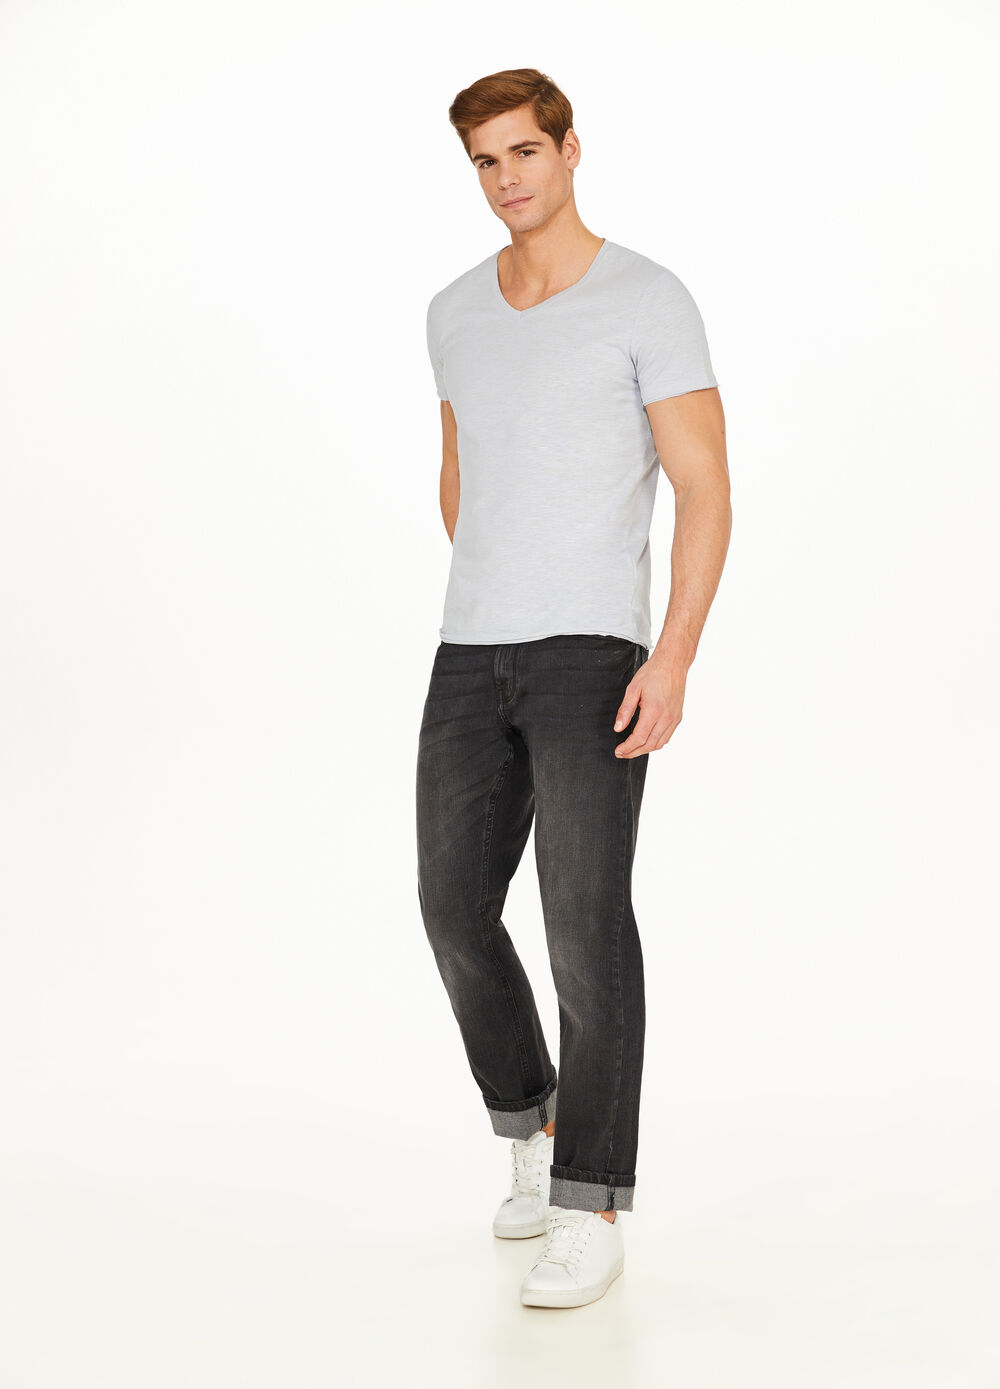 T-shirt with raw edges and V neck